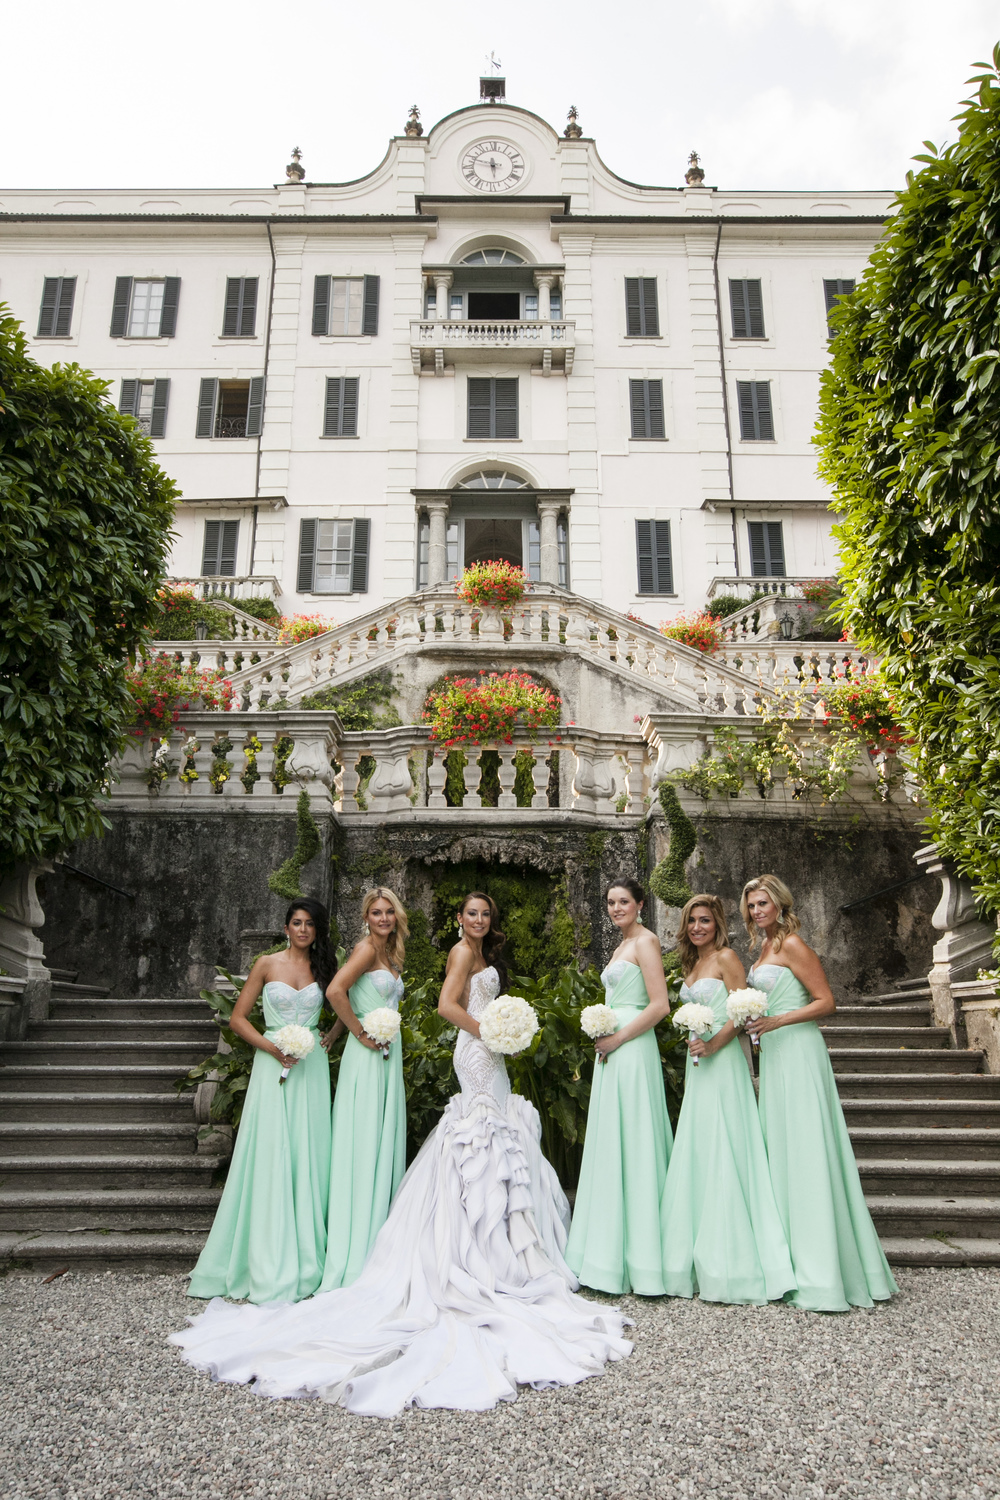 Ceci_New_York_Wedding_Lake_Como_Italy_Luxury_Style_Real_Bride_31.jpg